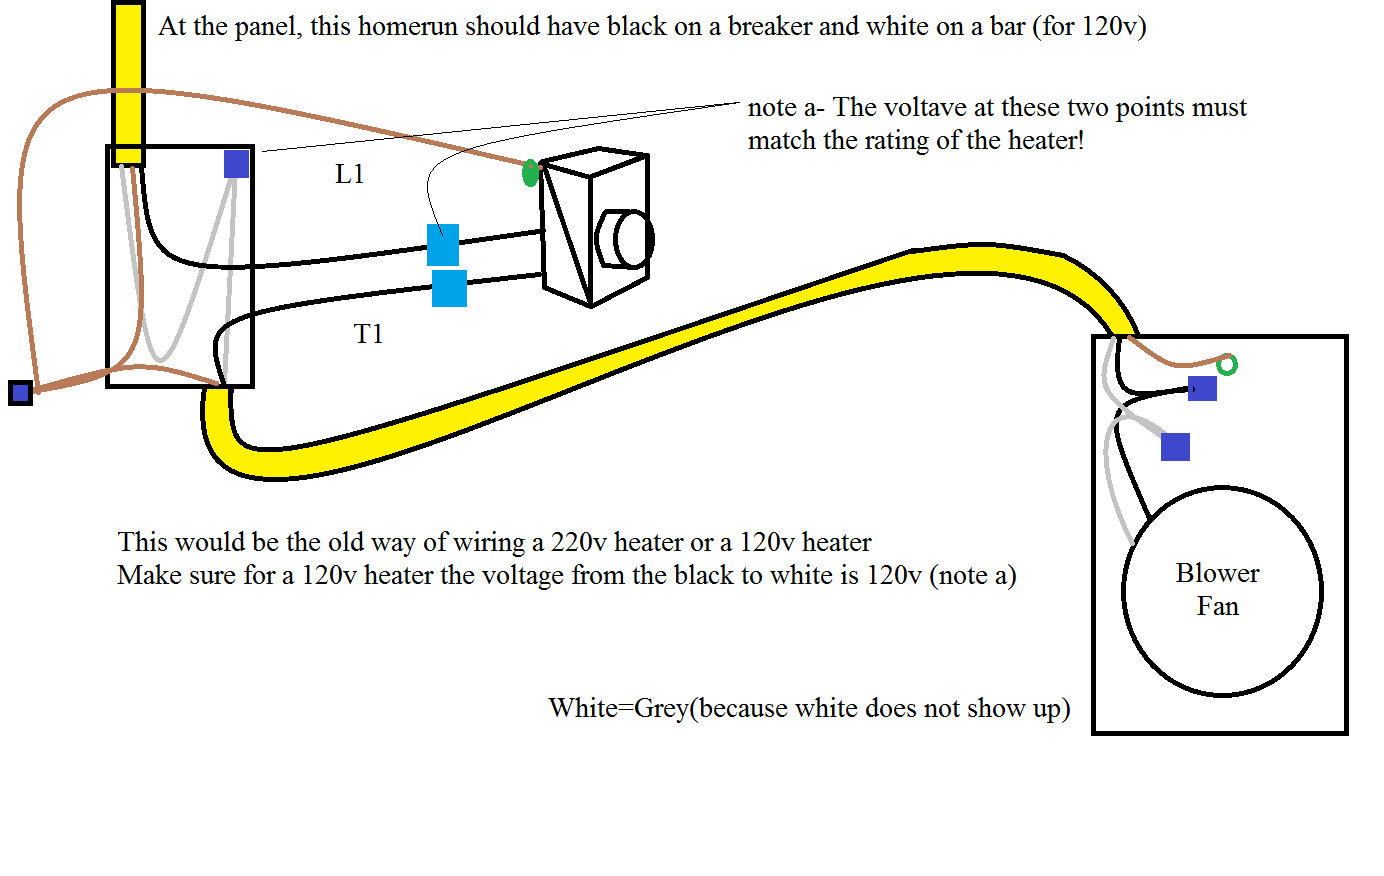 hight resolution of a house wired prior to 2008 would have the white wire wire nutted through even if it was 220v heater system where a house wired after 2008 the white wire